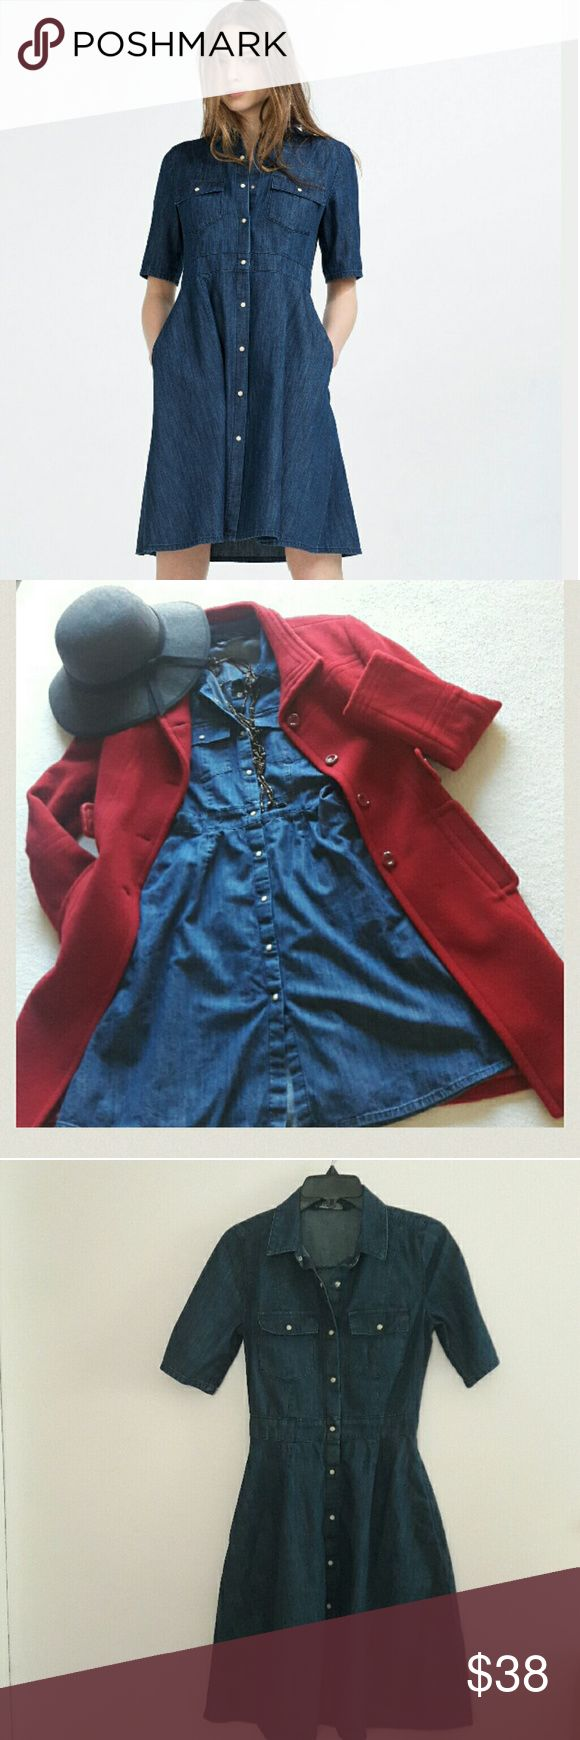 🌹Zara denim dress 🌹 Zara Basic denim dress in excellent condition  Snap buttons all the way , fit and flare style , two pockets , indigo blue color . This dress is new wit out  tag . Very cute jean dress , XS size , 100% cotton  Red coat for sale @ 55 dollars Zara Dresses Midi